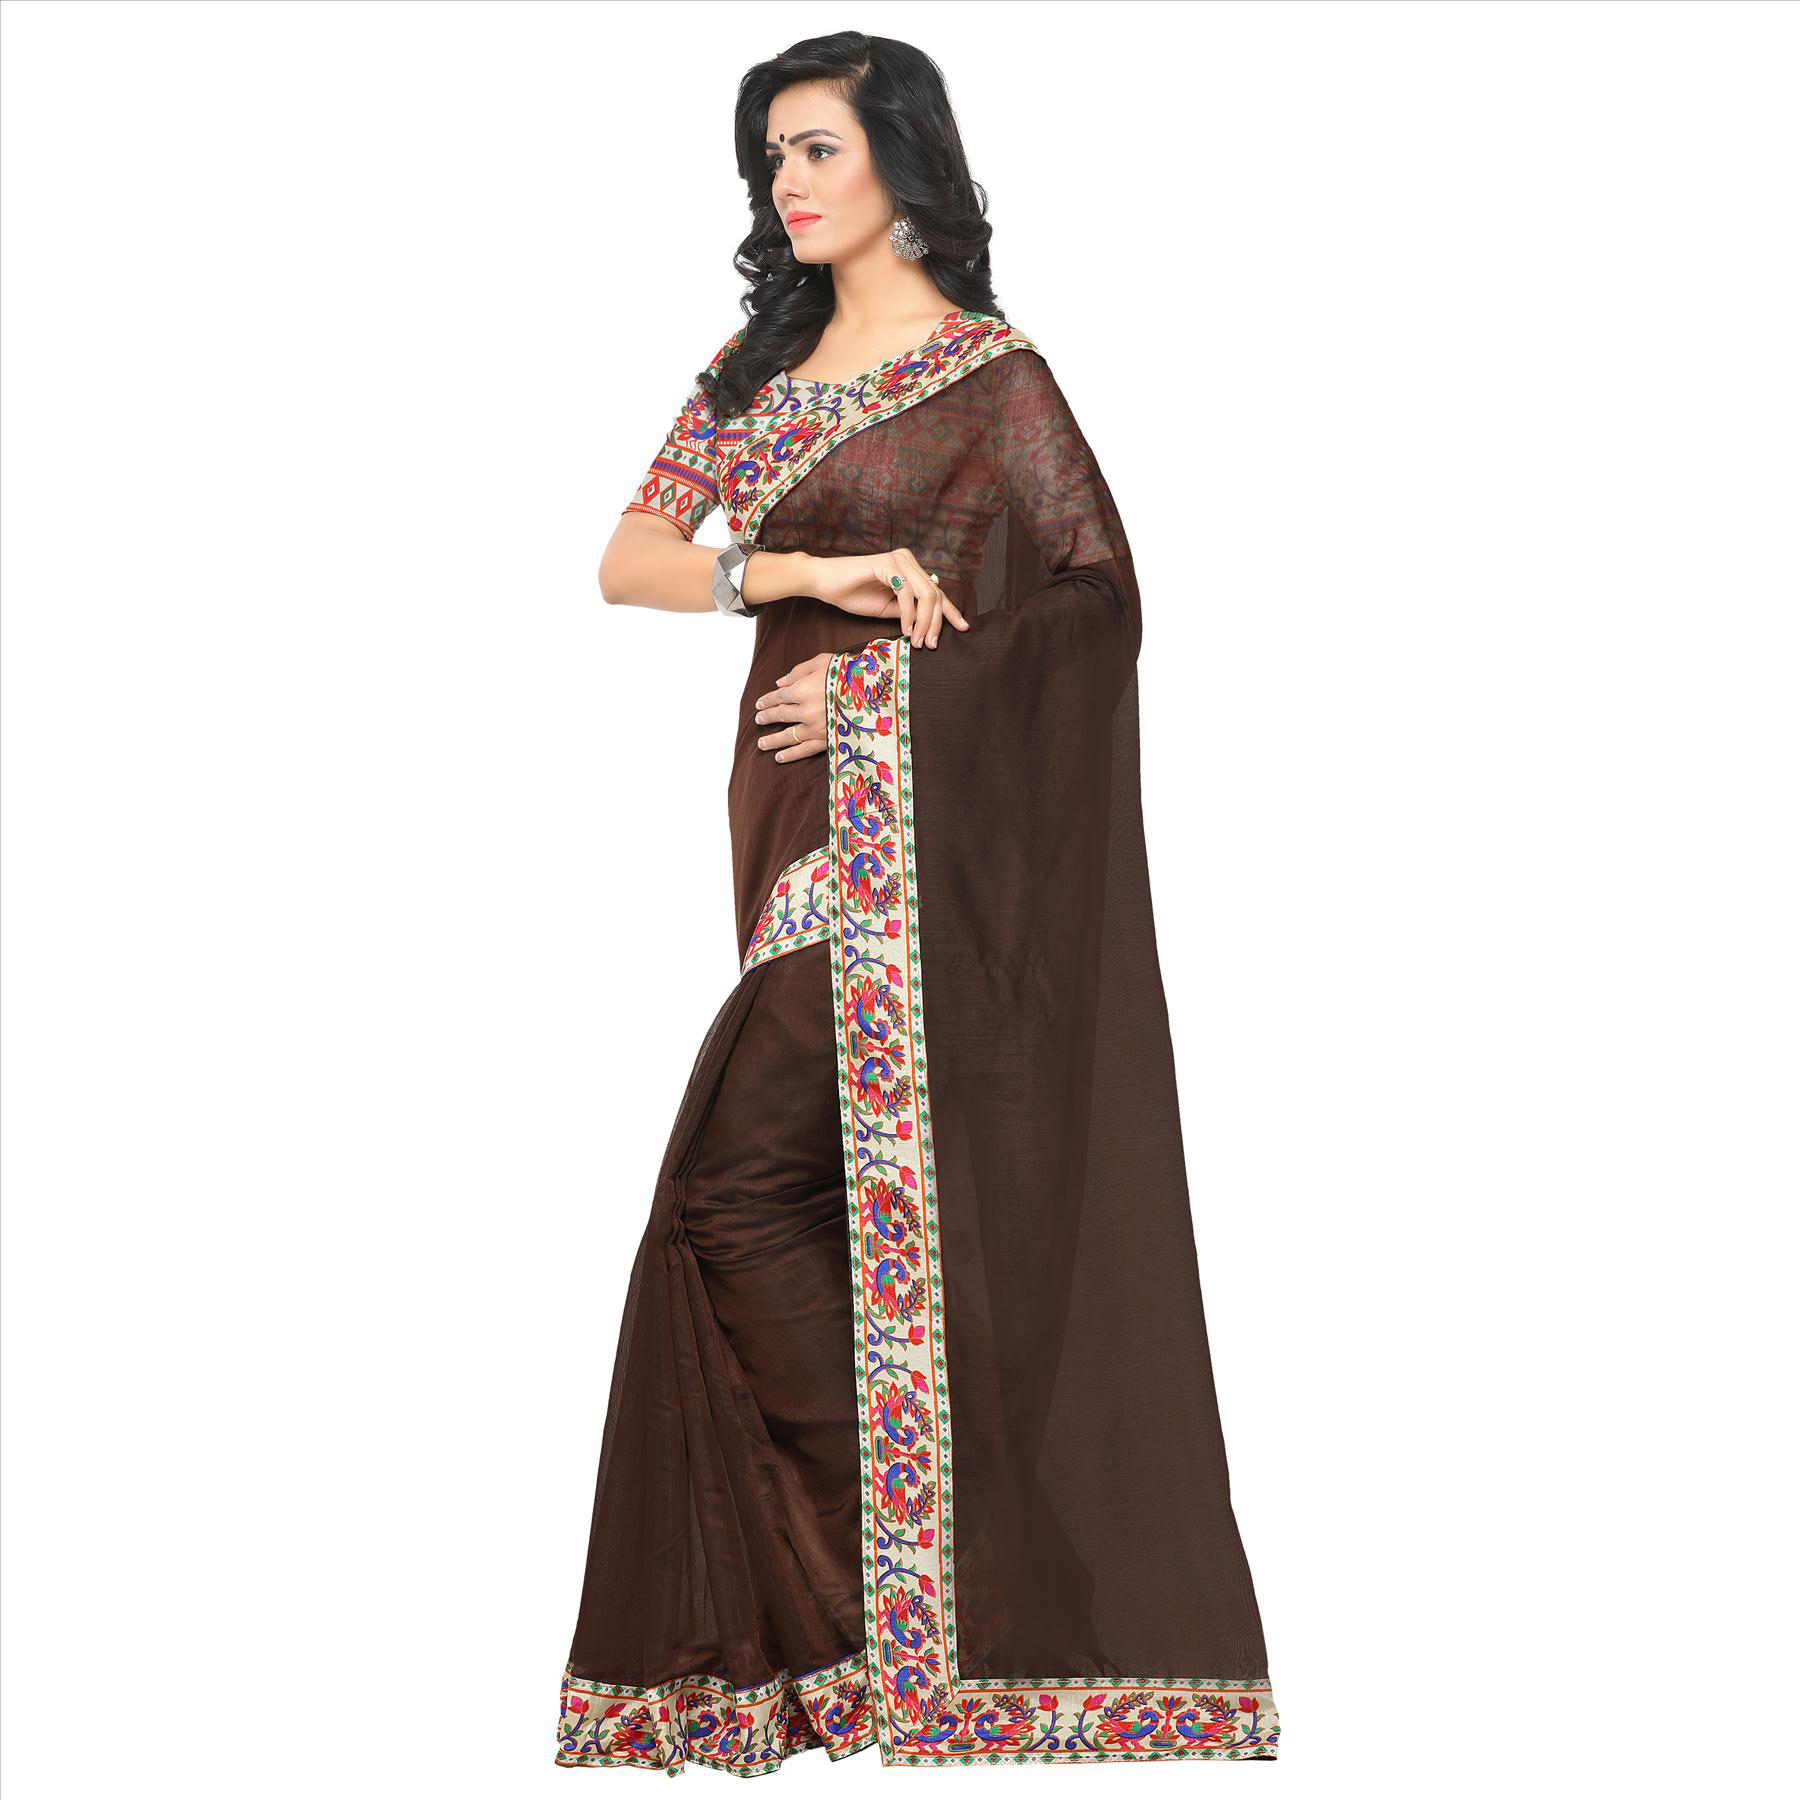 Lovely Brown Colored Lace Bordered Chanderi Silk Saree